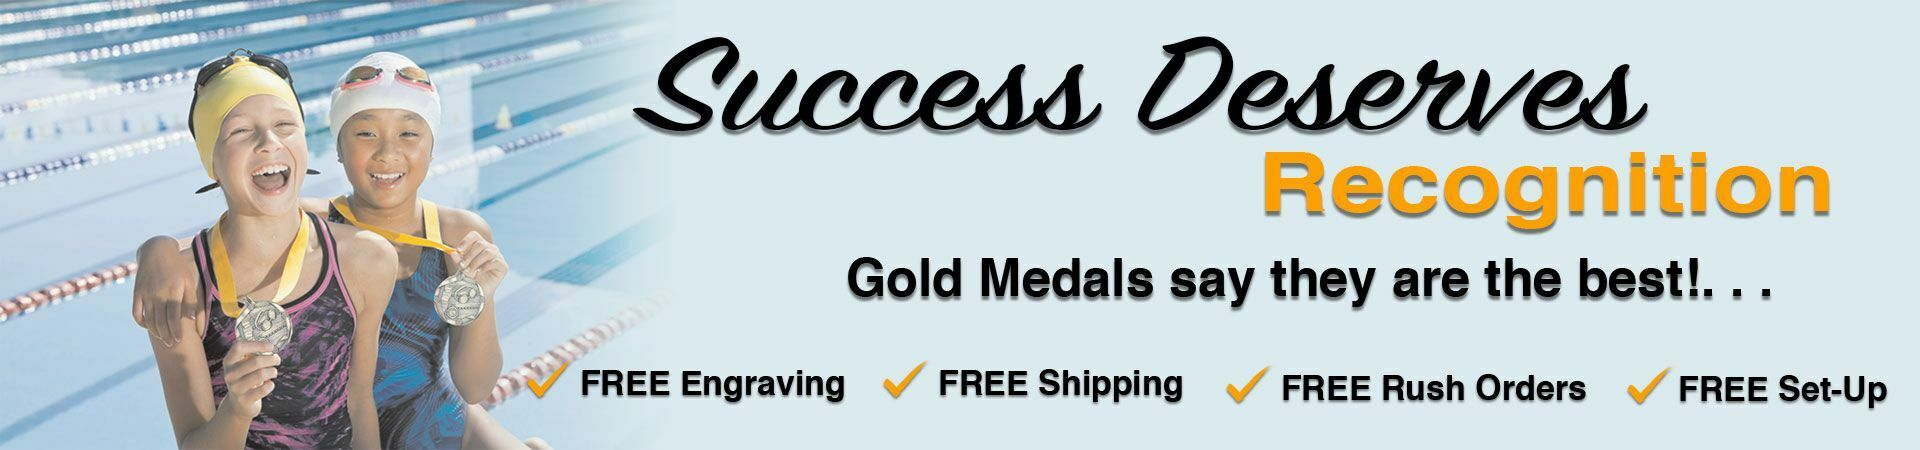 Success Deserves Recognition slider showing two girls celebrating winning gold medals after a swim meet.